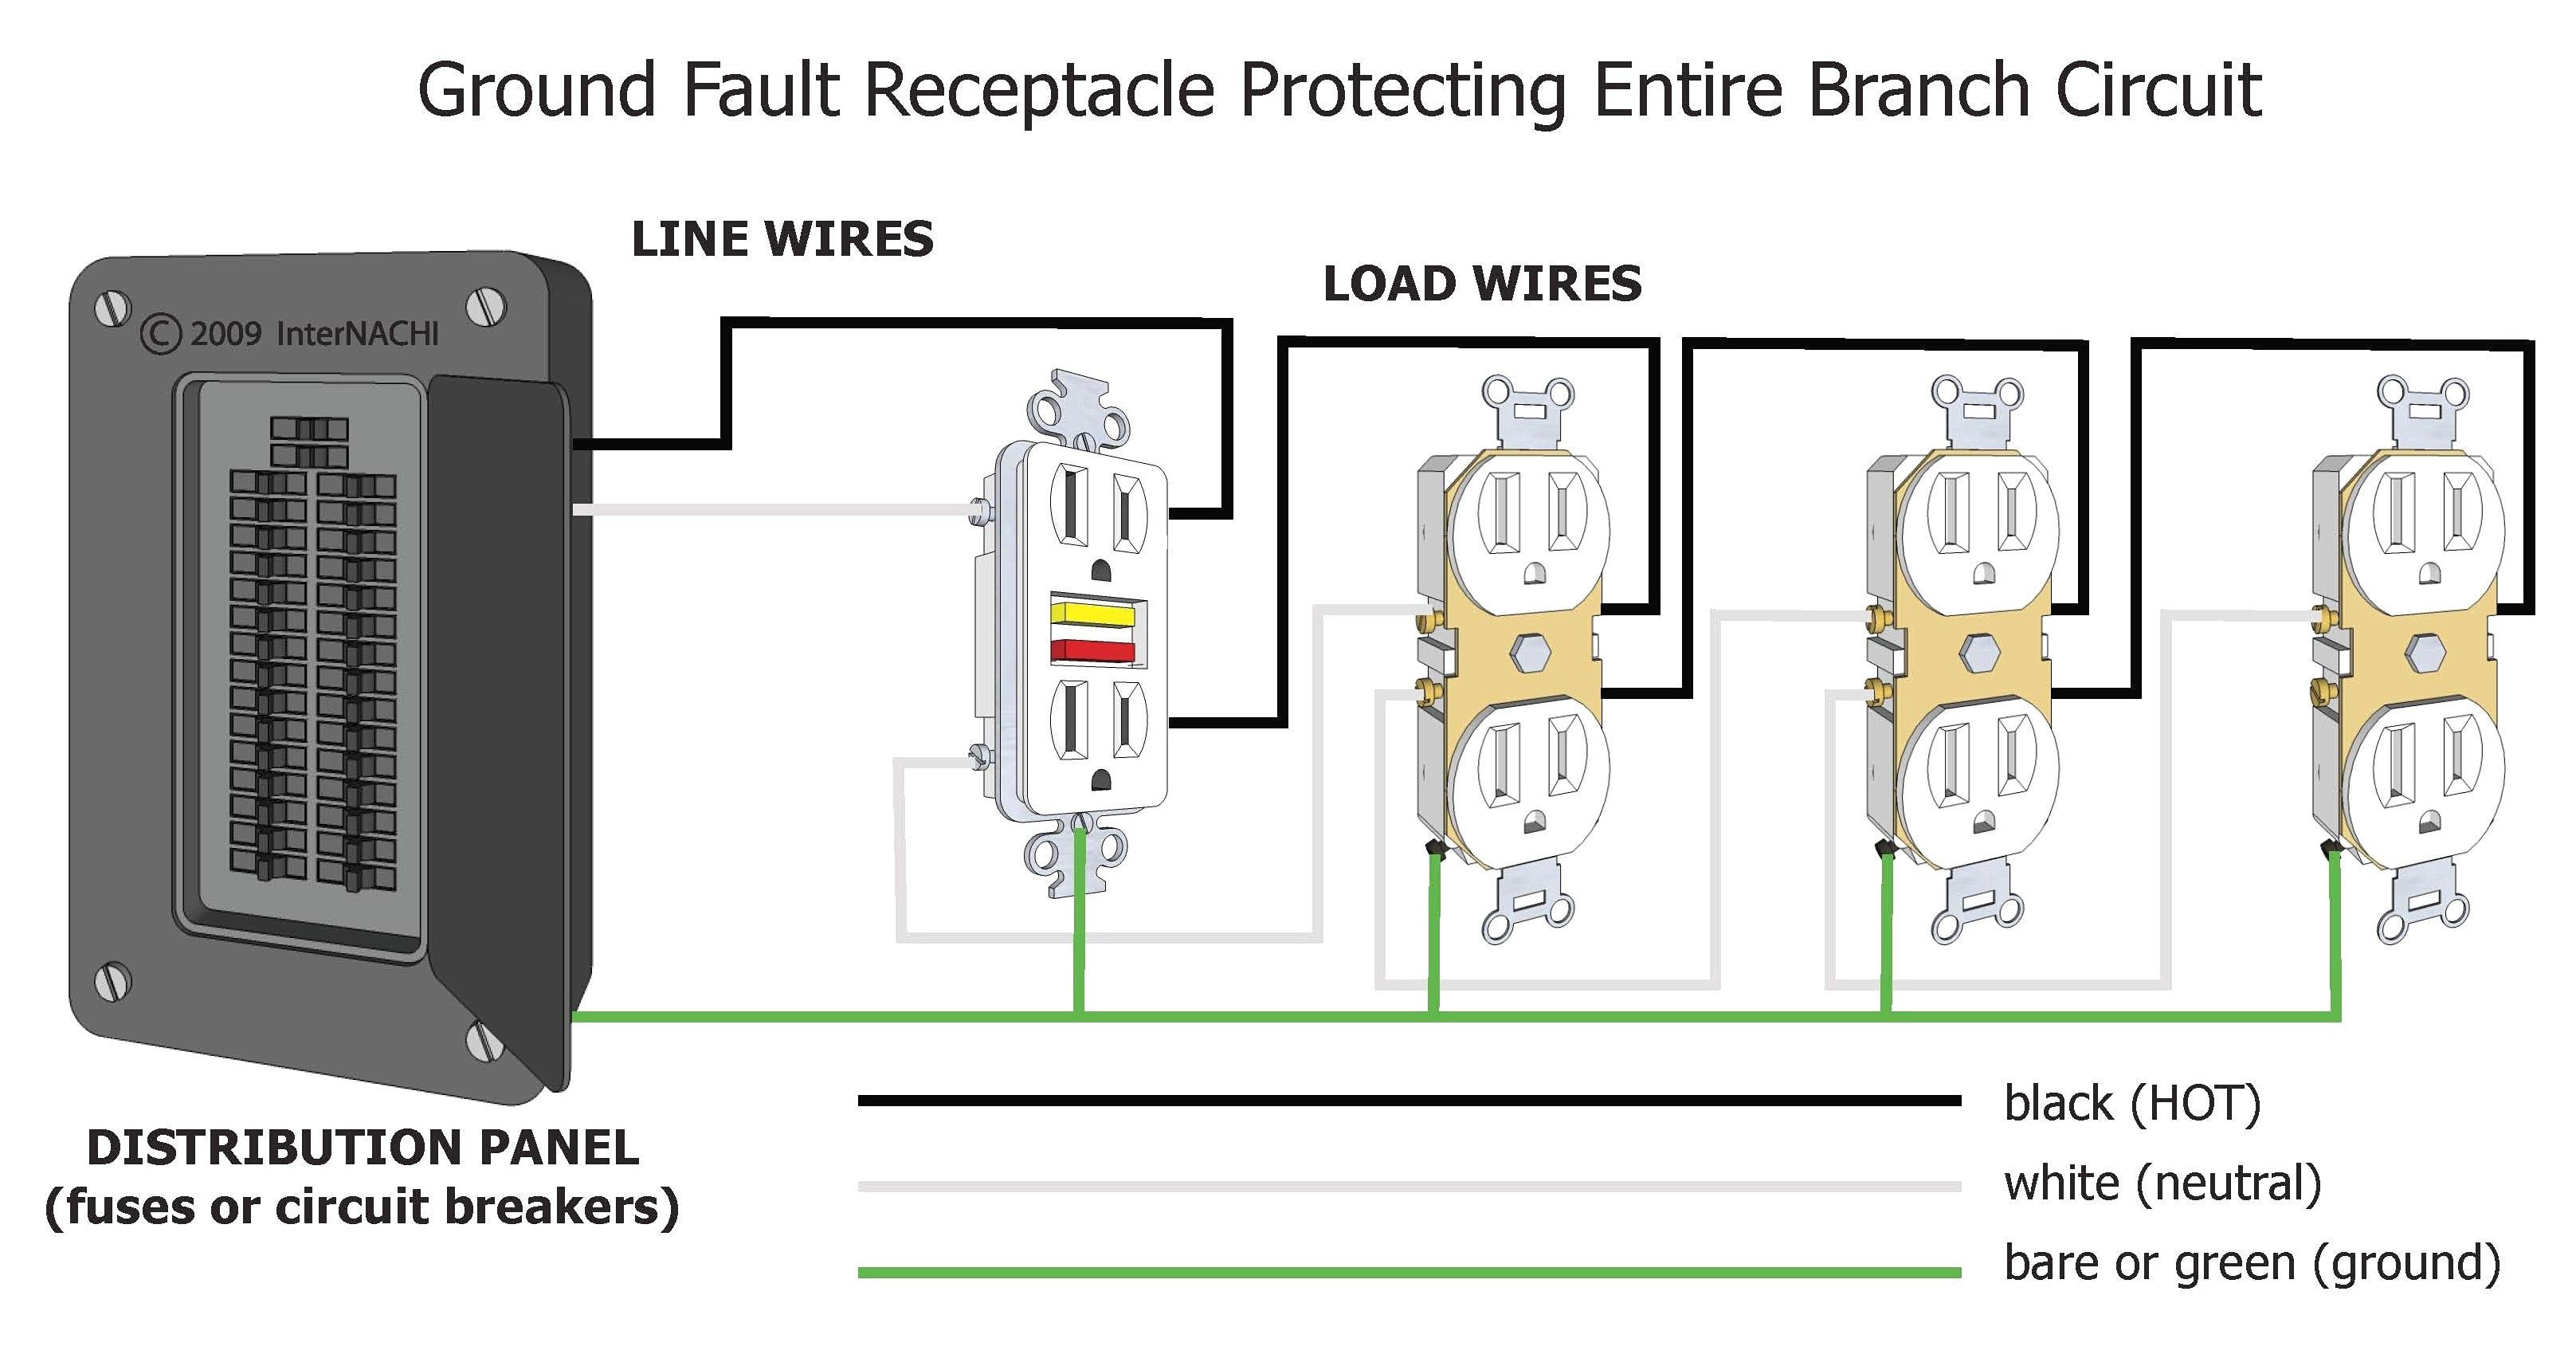 Quincy Wiring Diagram on air compressor, water pump, volt off switch, 20 amp outlet, baseboard heater, breaker box, vs 110 volt ac, electric motor, for house dryer, volt 4 wire plug, volt receptacle,